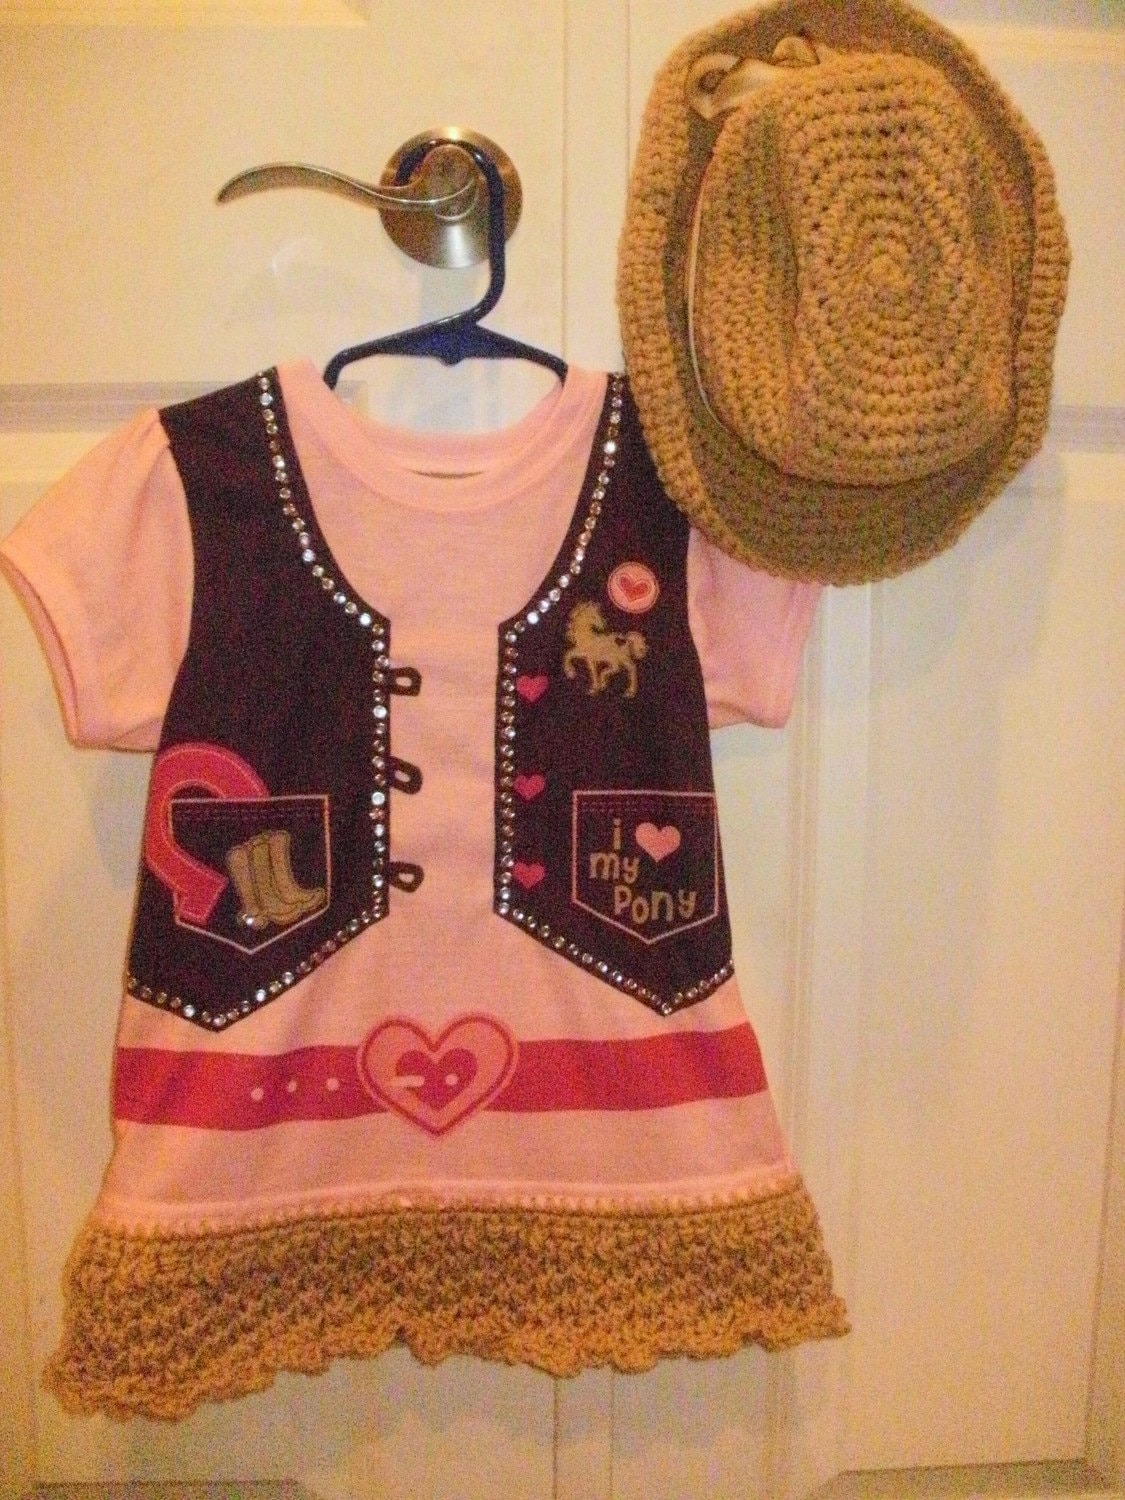 Giddiup Cowgirl Dress and Matching Cowgirl Hat size 4T